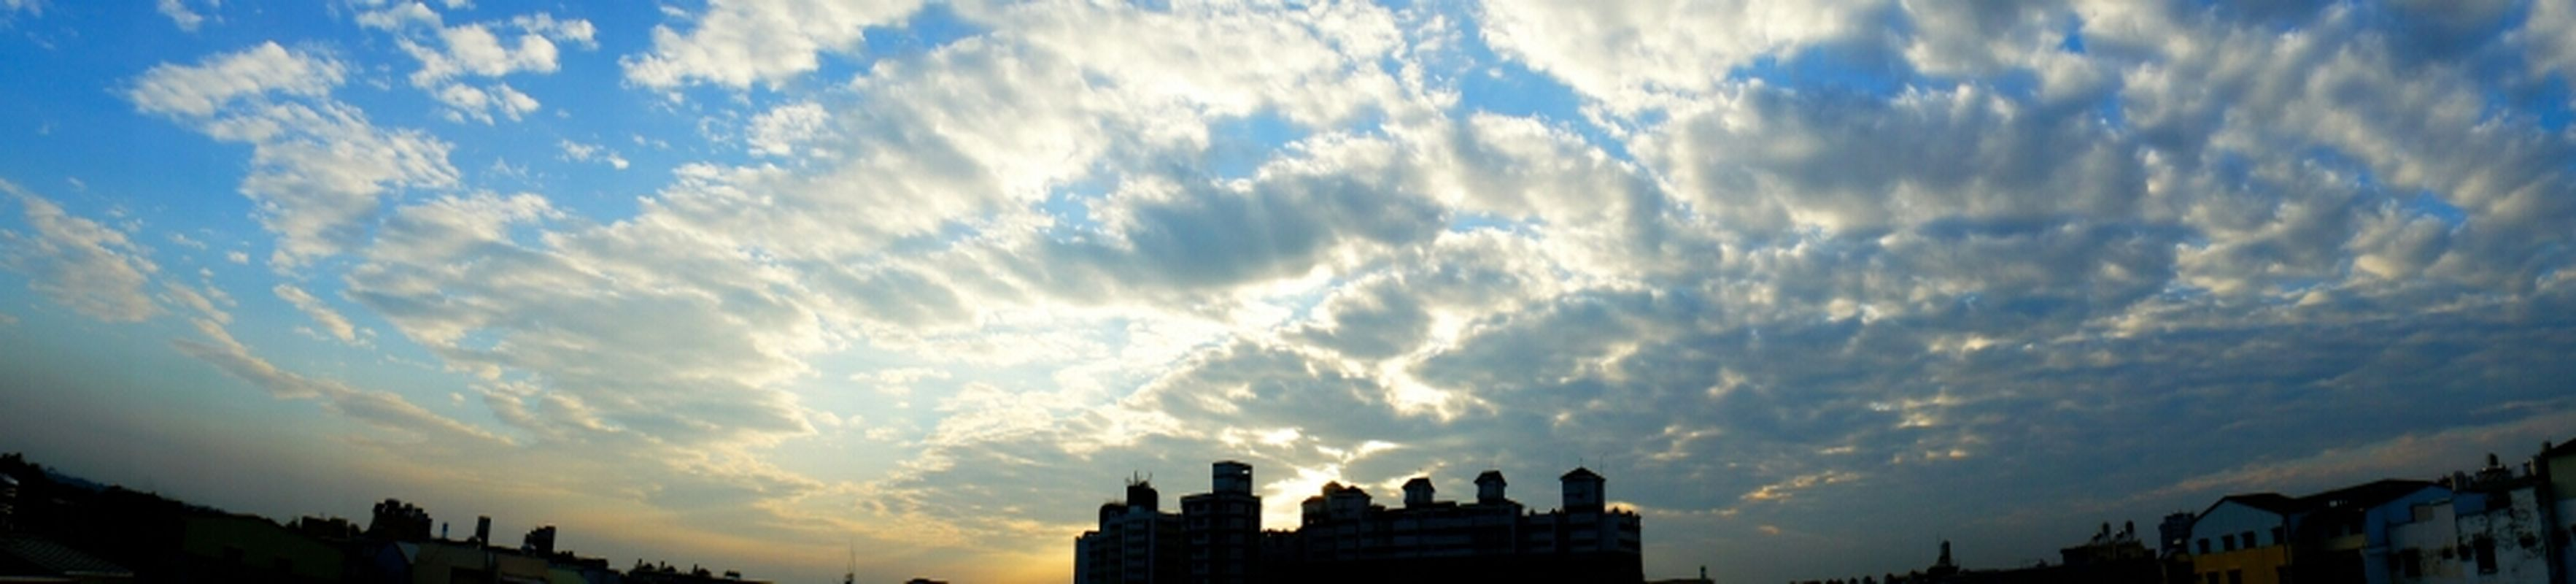 clouds and sky what i saw clouds streetphotography sunset sky Enjoying the Sun Enjoying the View Taiwan enjoying life by SCBeelzebub